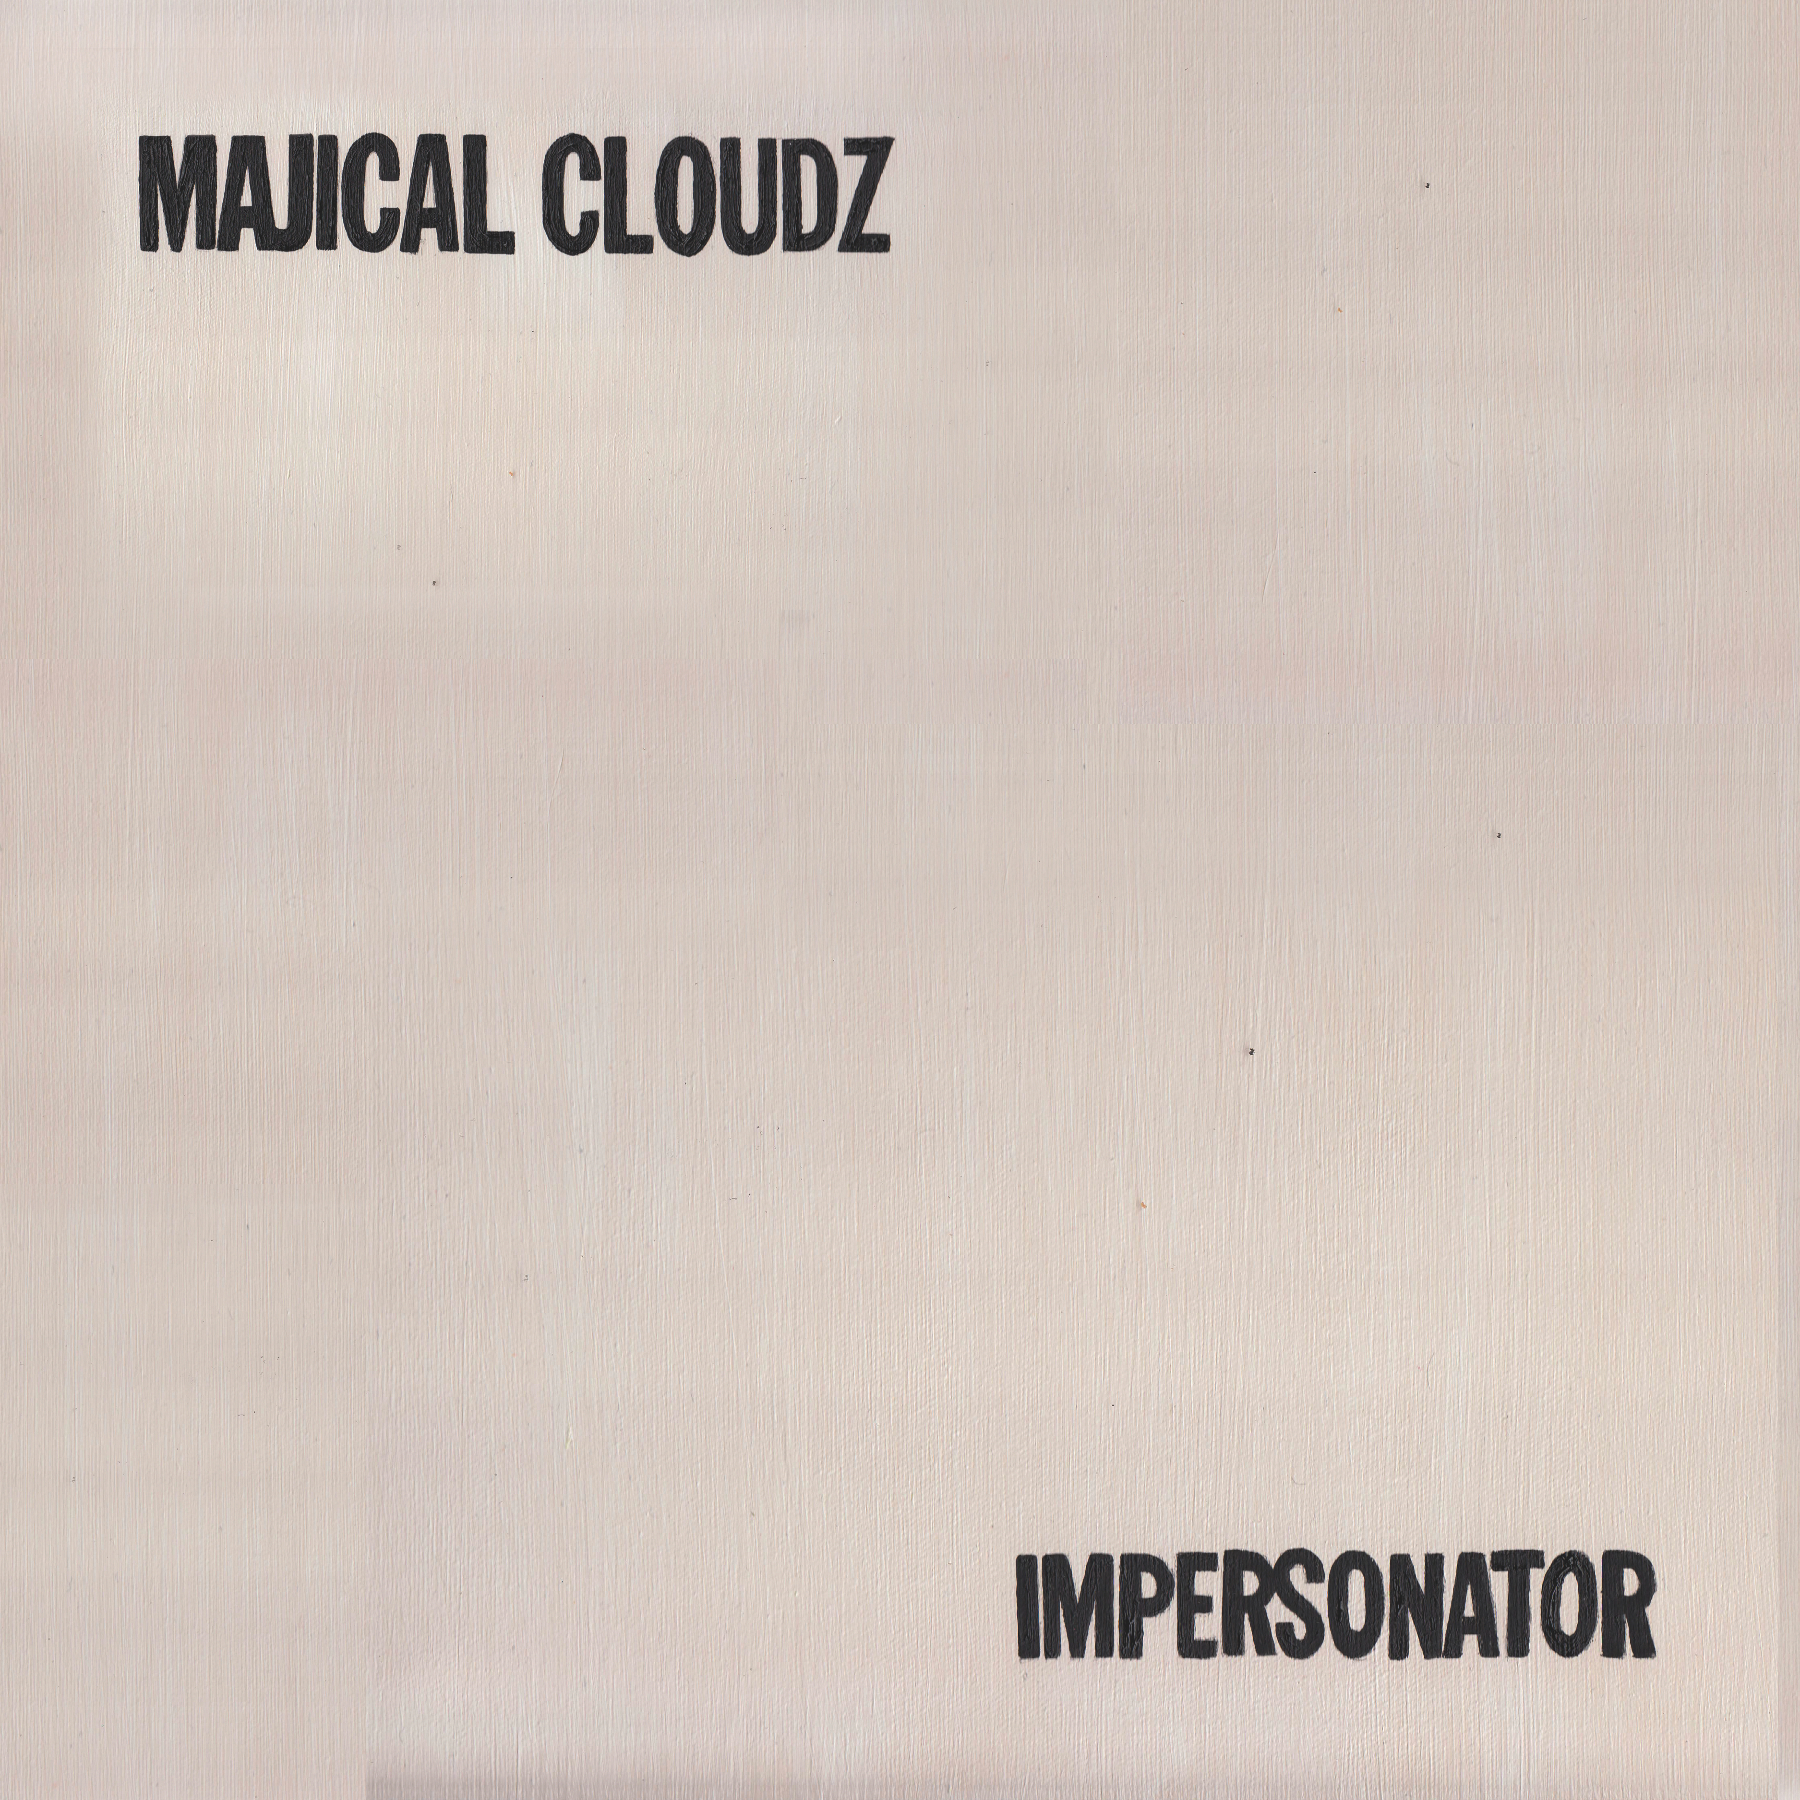 Majical Cloudz